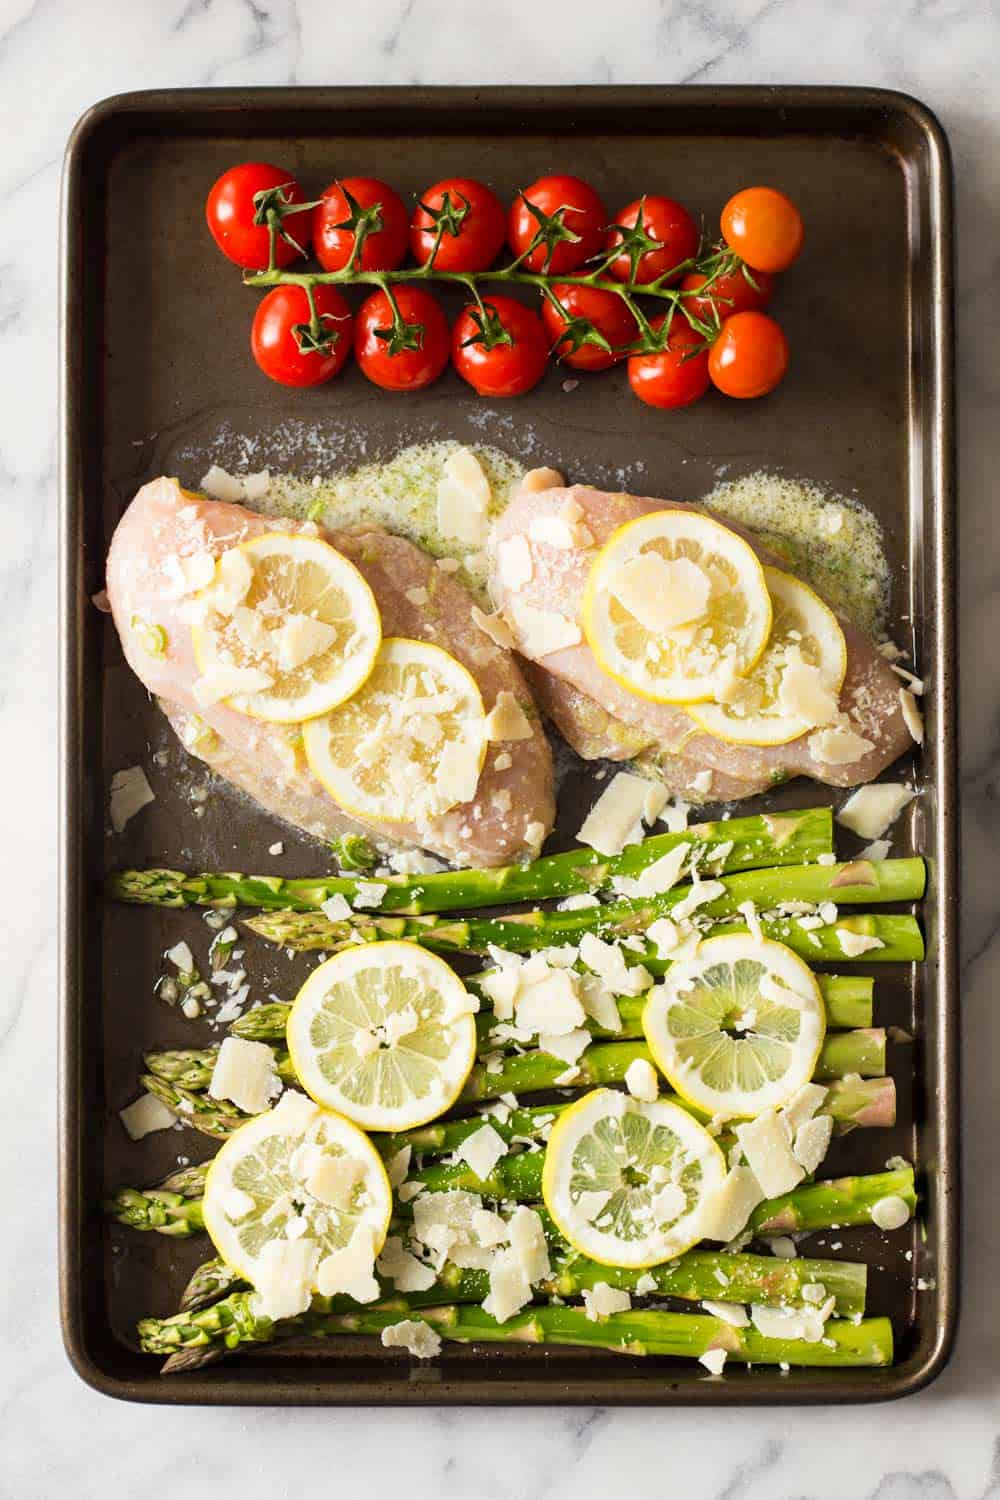 Sprig of cherry tomatoes, lemon chicken breasts and asparagus in a pan.